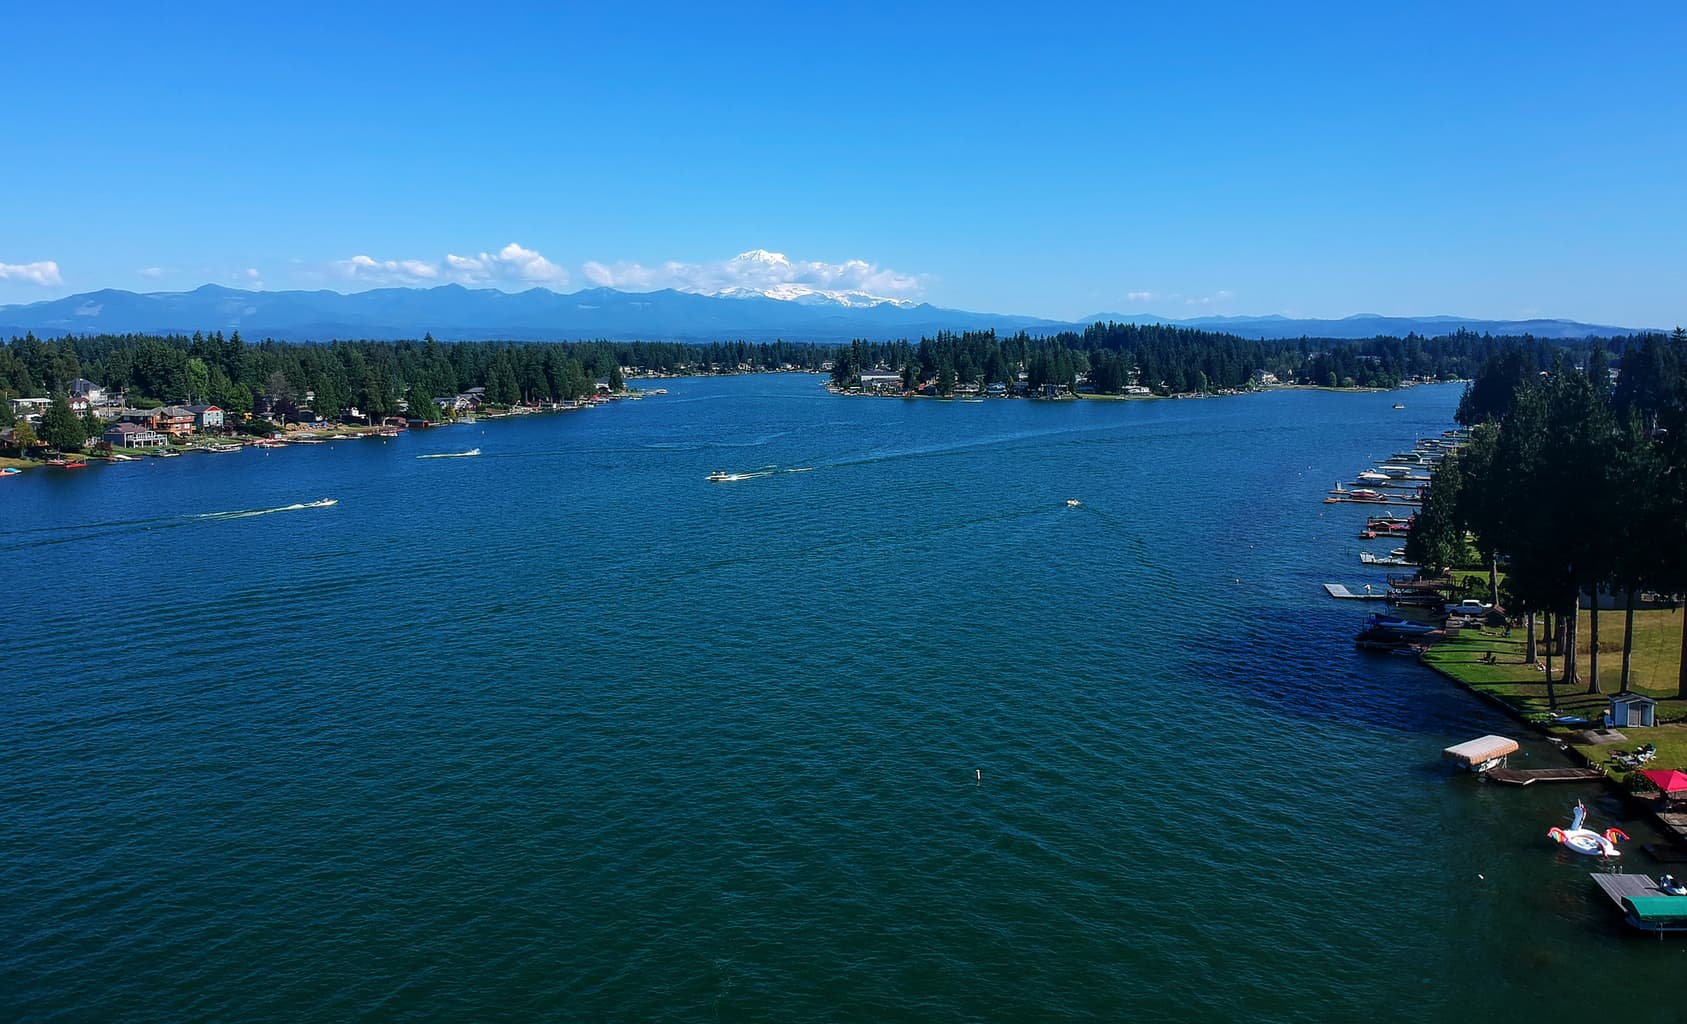 lake tapps scenic of boats and docks and homes